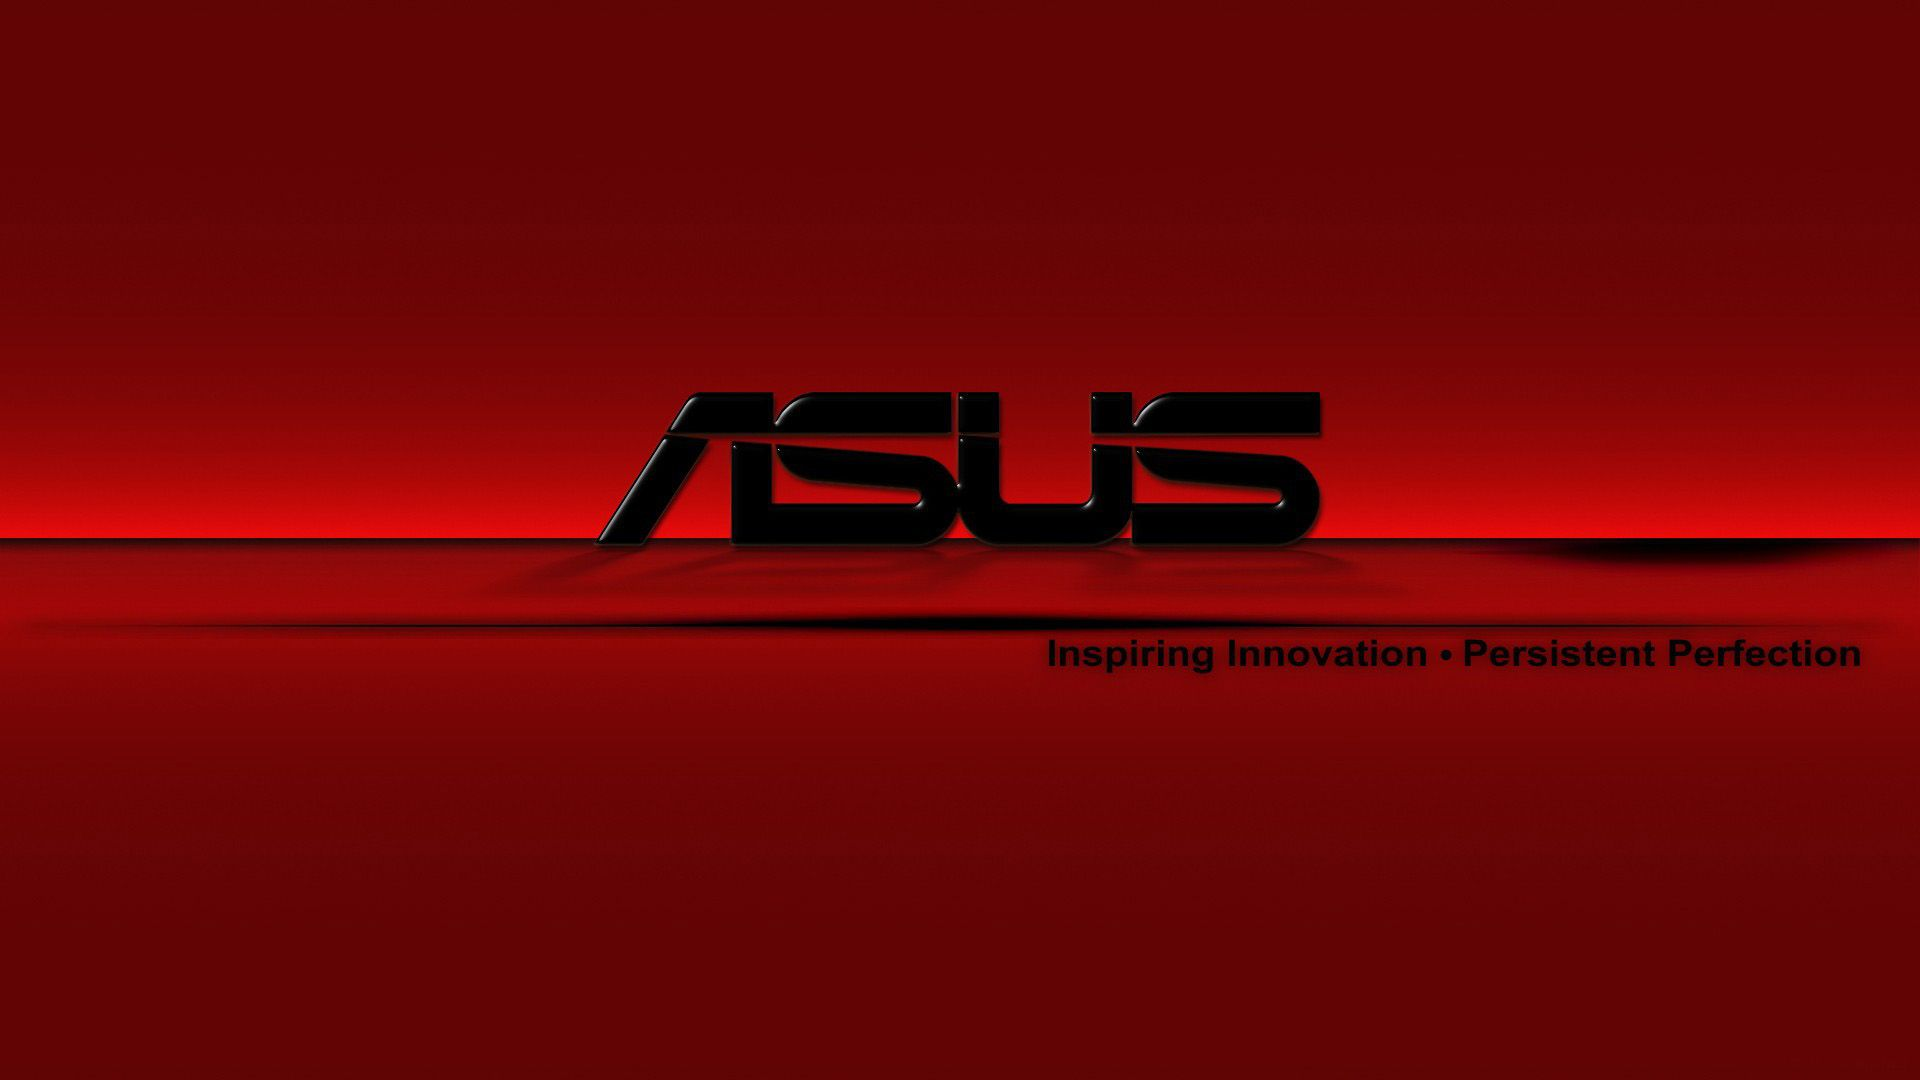 Asus Brand Logo Red Background HD Wallpaper | Alınacak ...